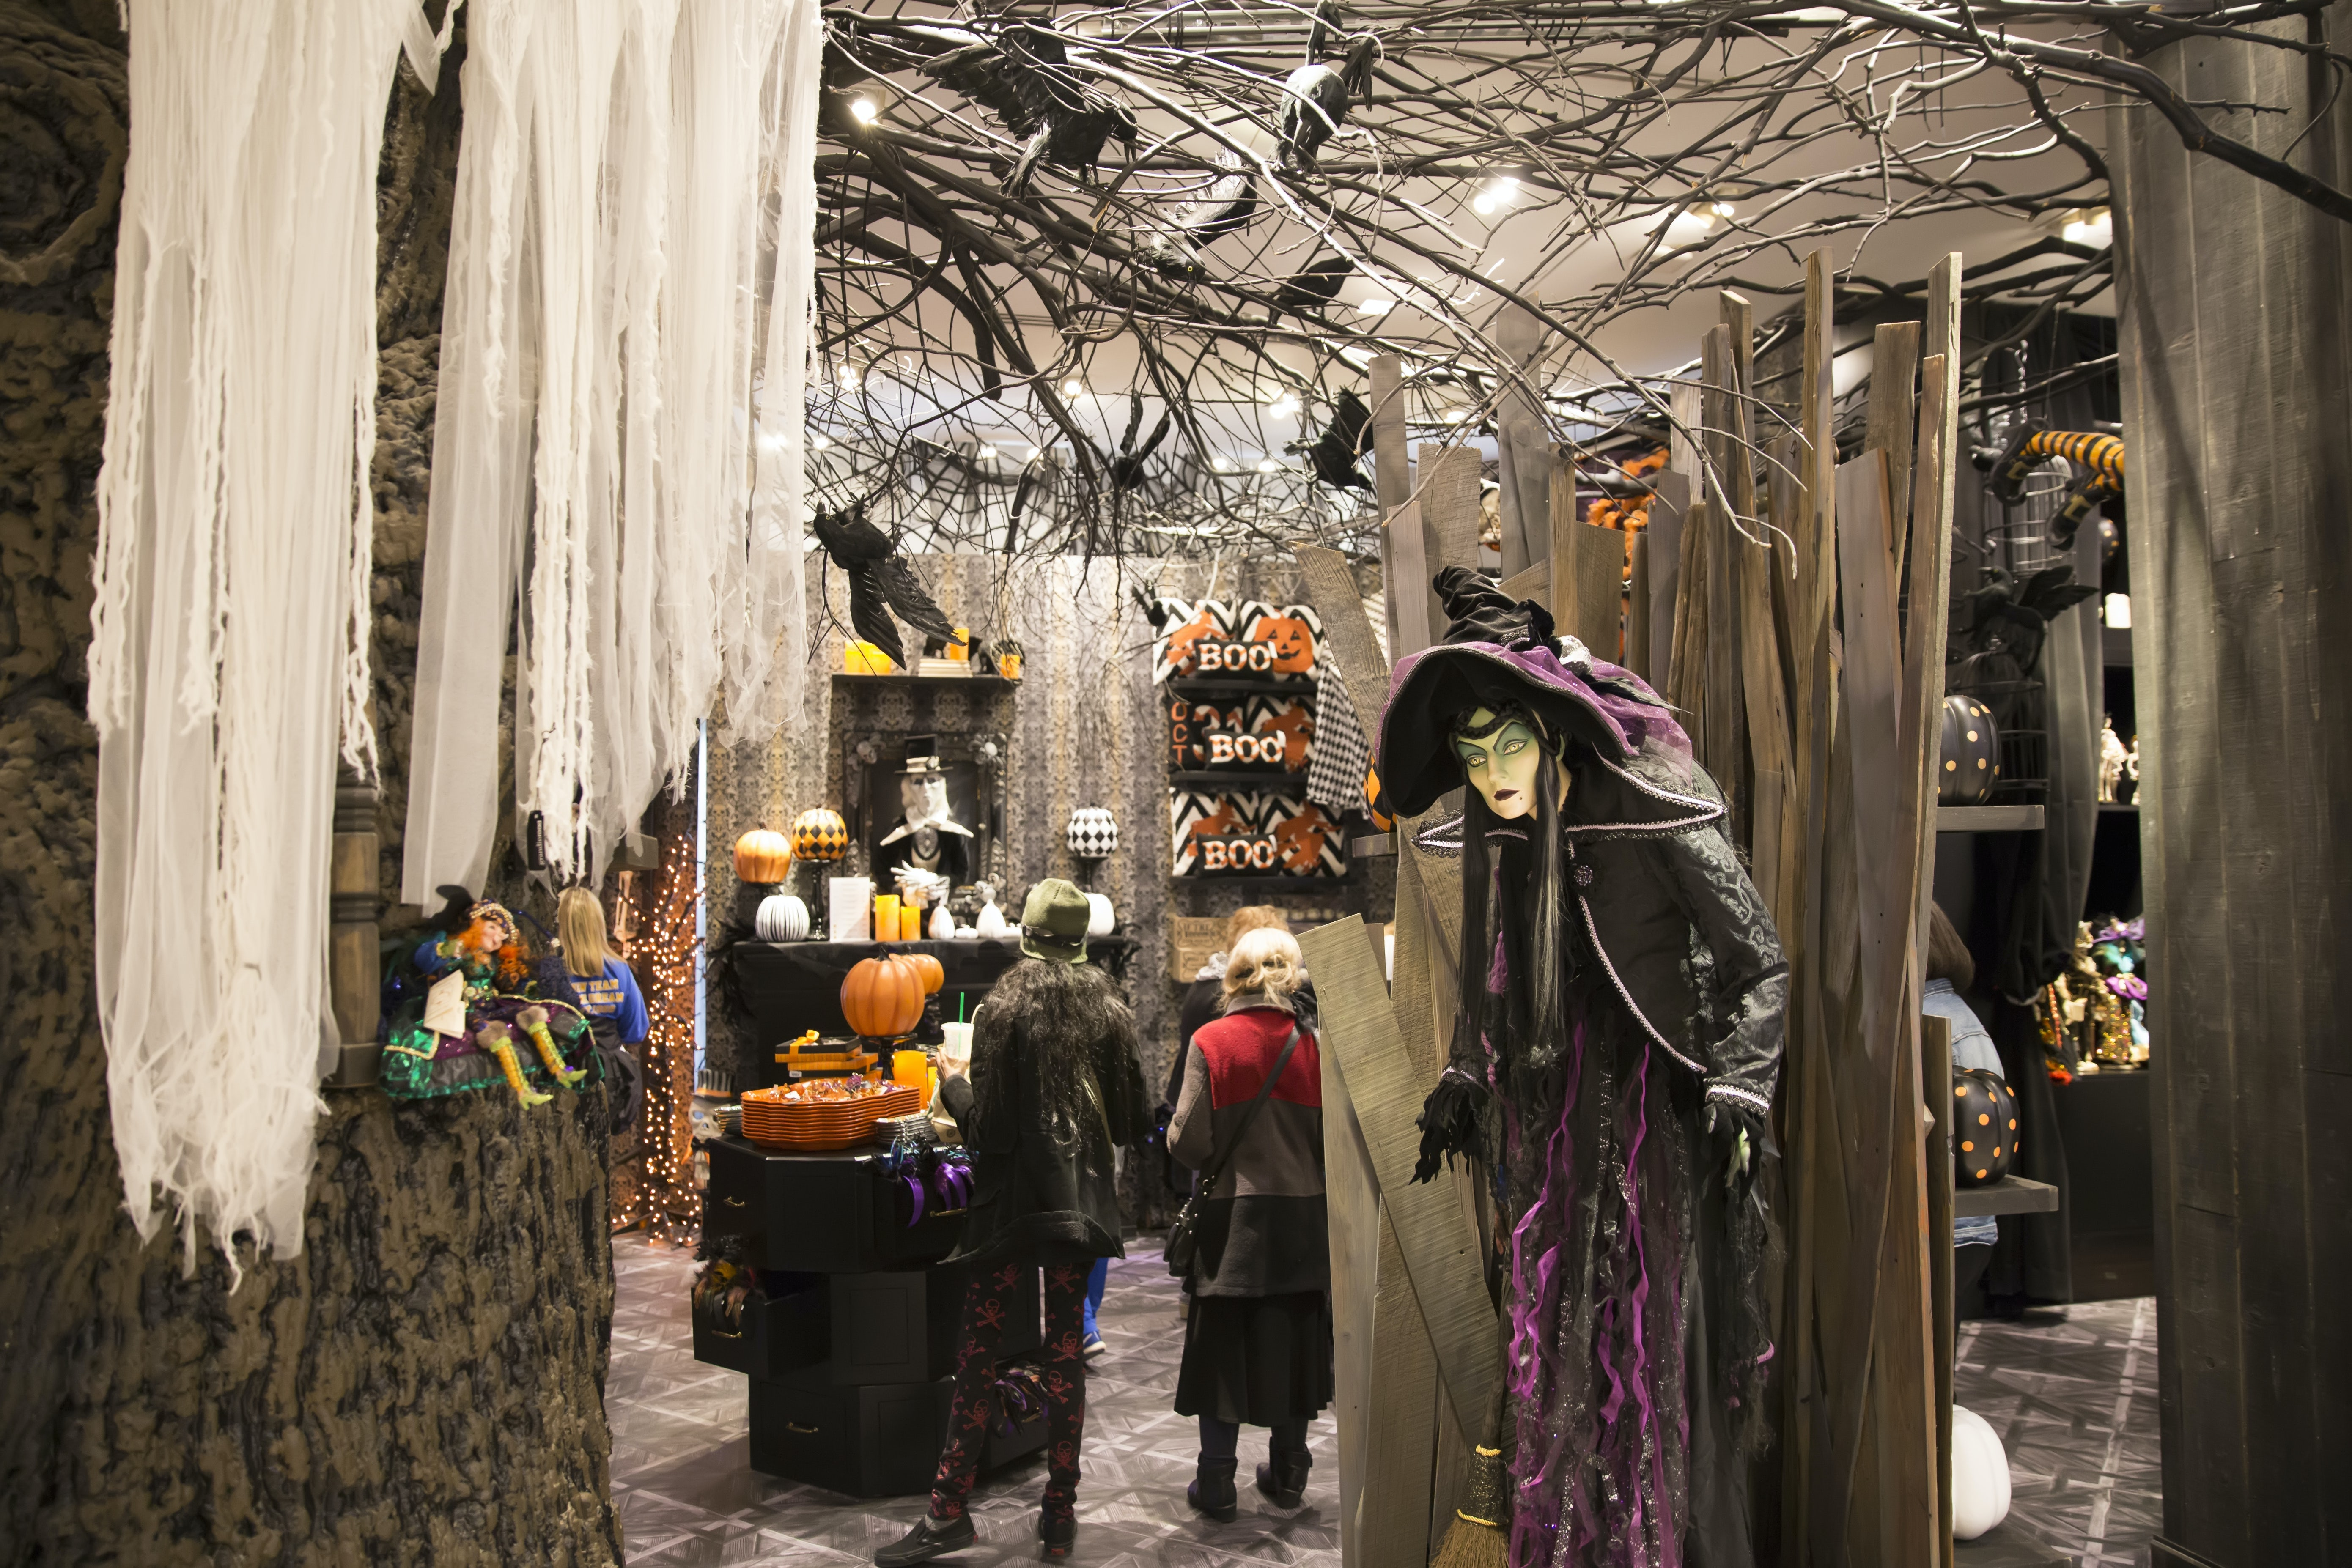 Grandin Road's Halloween pop-up store at Macy's | Source: Shutterstock